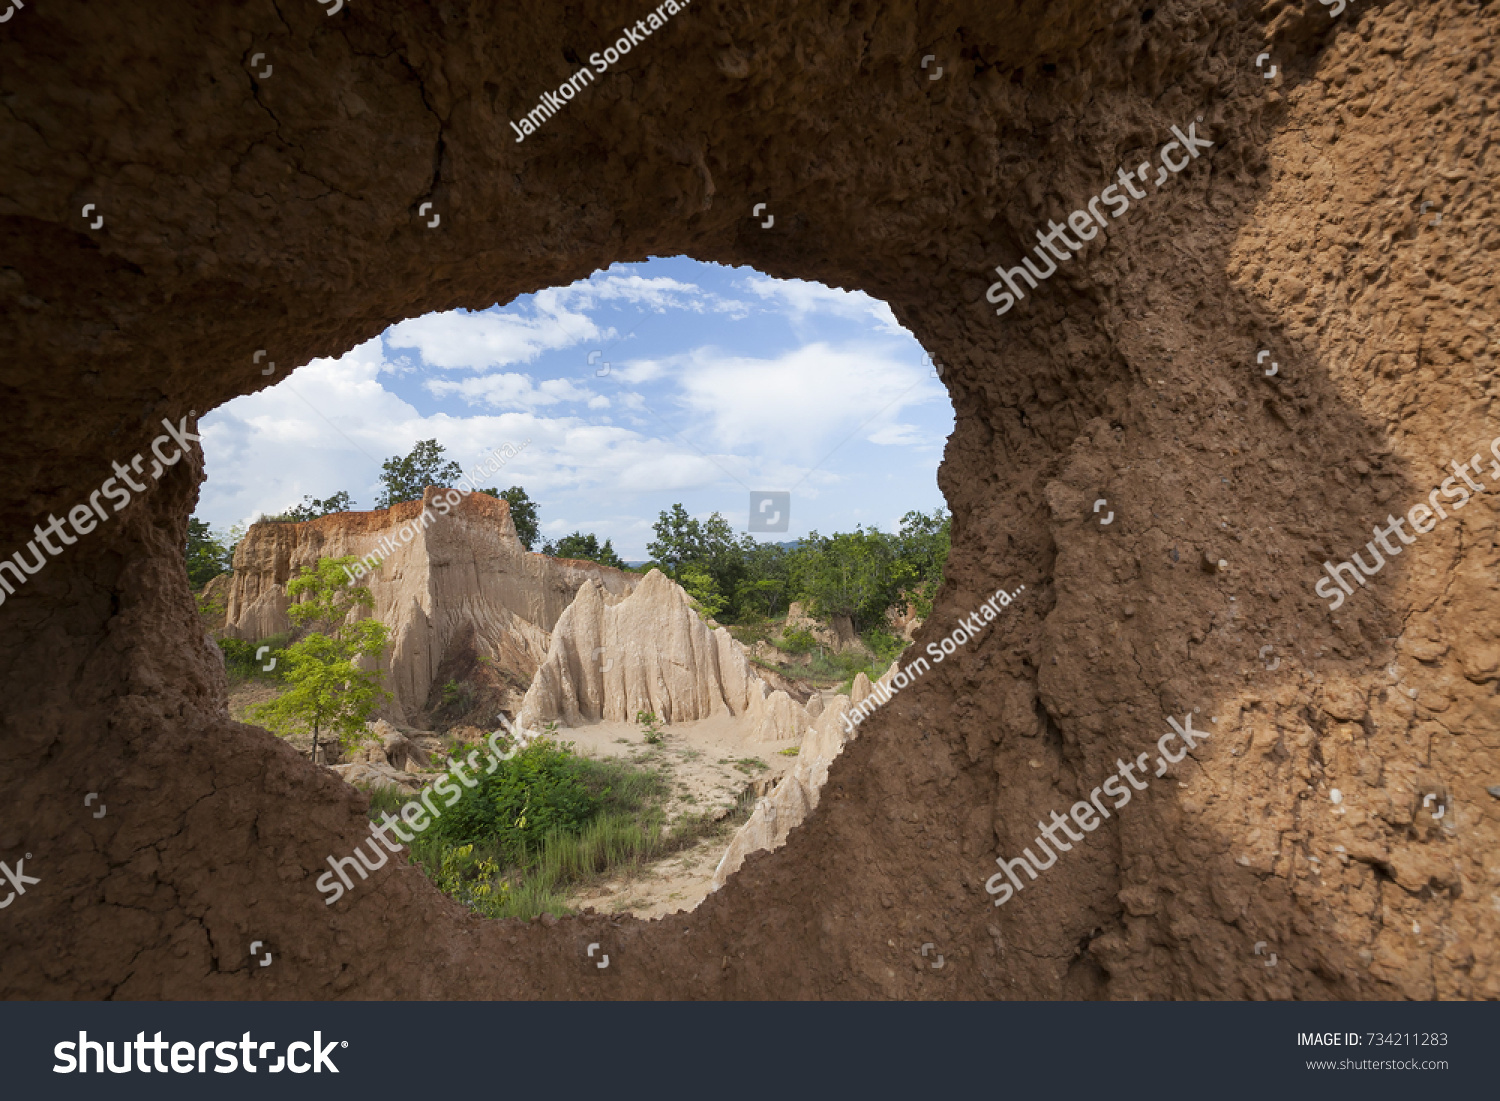 Wind water erosion cause strange landscape stock photo 734211283 wind water erosion cause strange landscape stock photo 734211283 shutterstock sciox Gallery